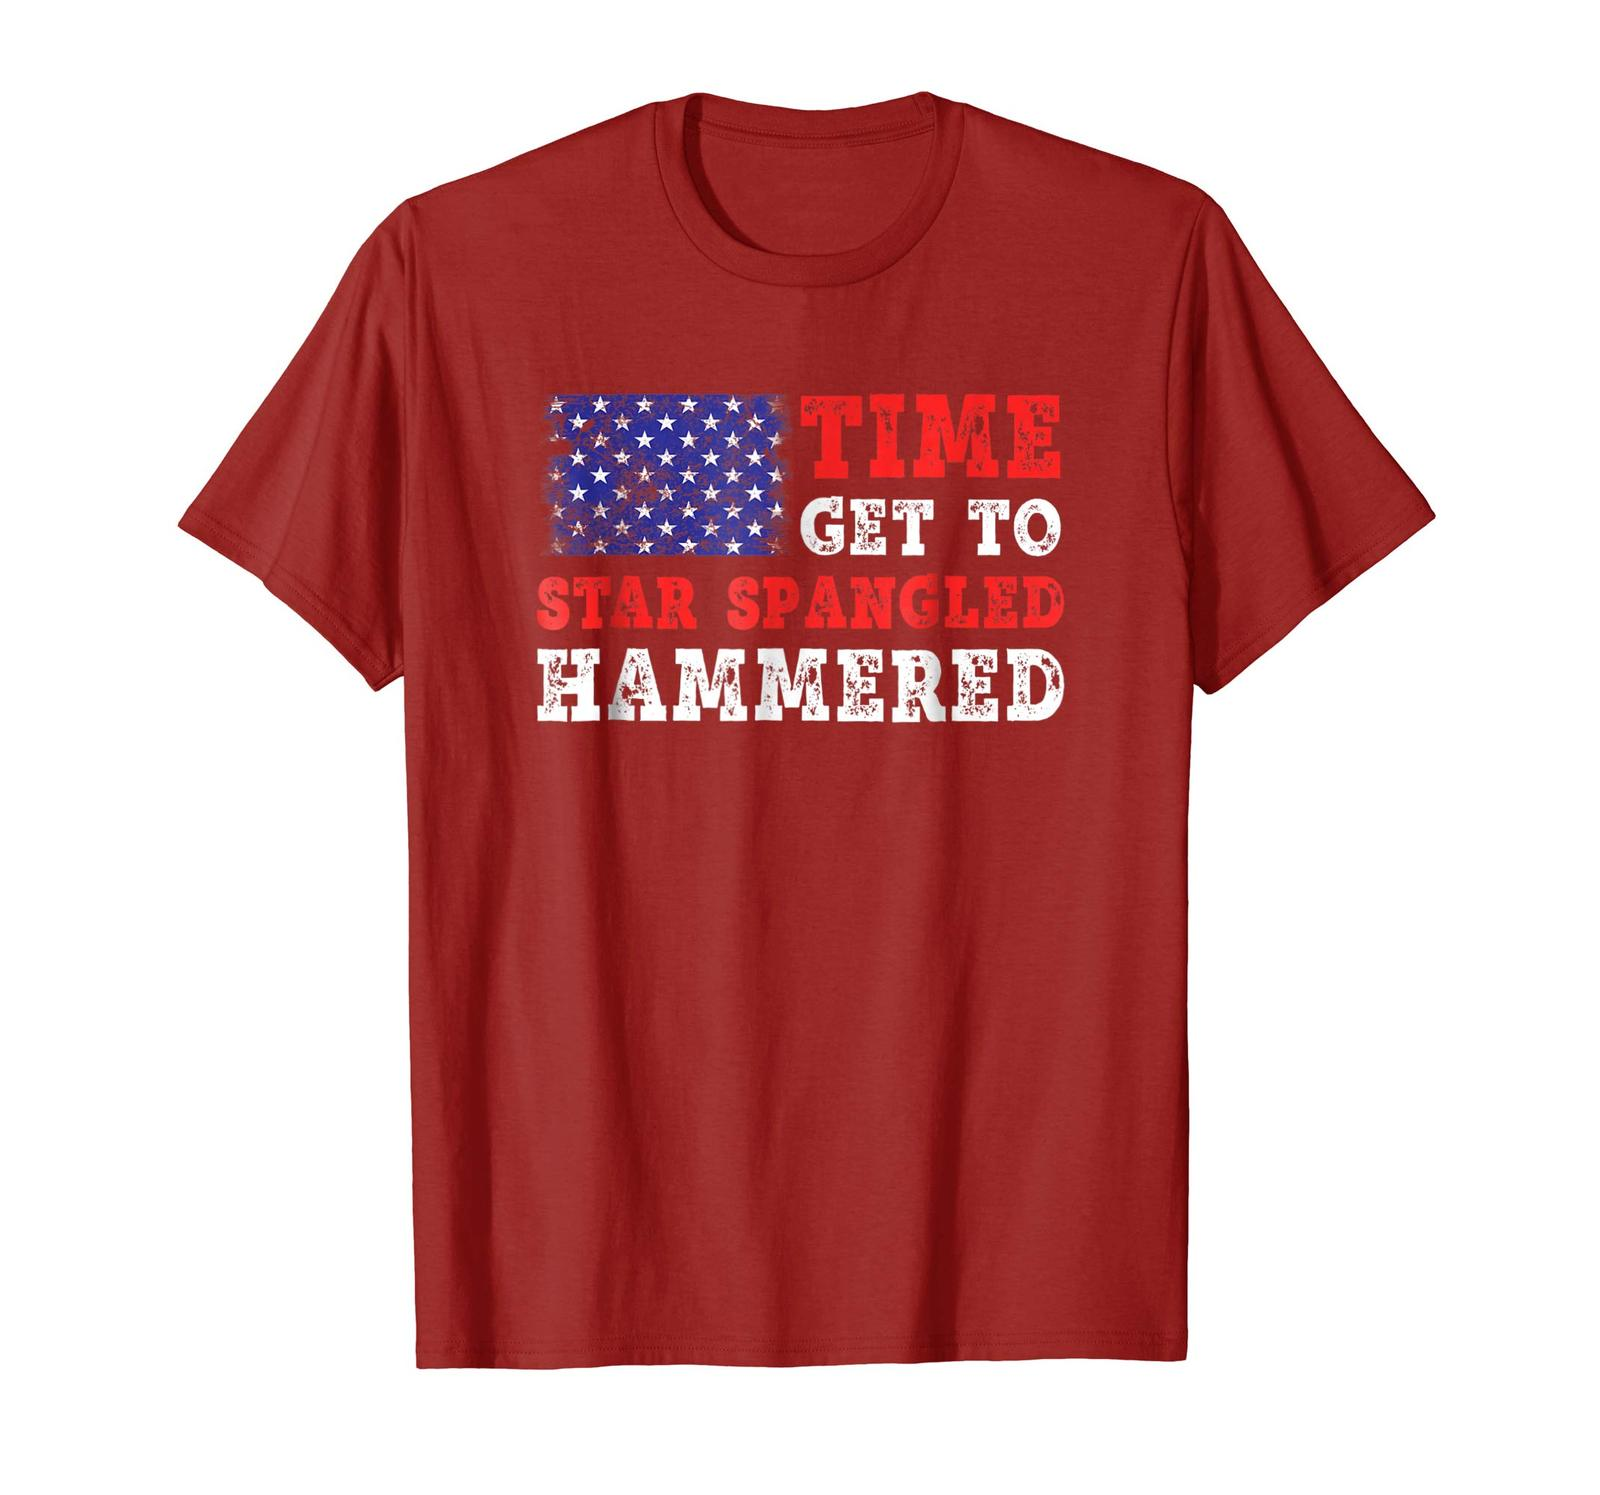 Brother Shirts - Time To Get Star Spangled Hammered T-Shirt Fourth of July Men image 2